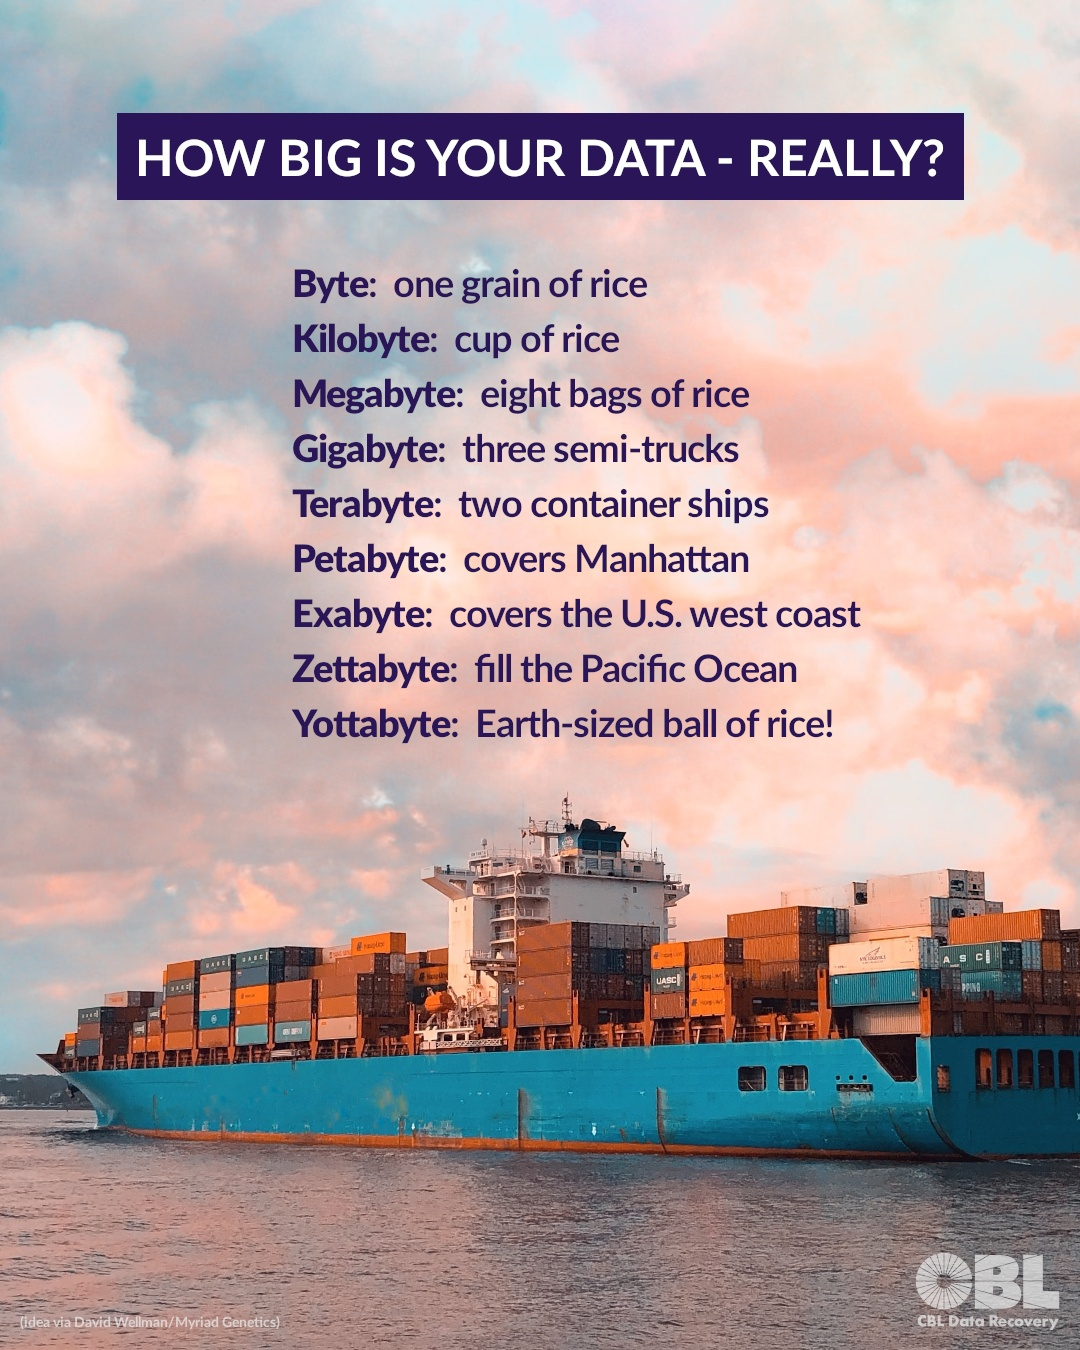 HOW BIG IS YOUR DATA - REALLY? Hattip to David Wellman/Myriad Genetics for the metaphor.